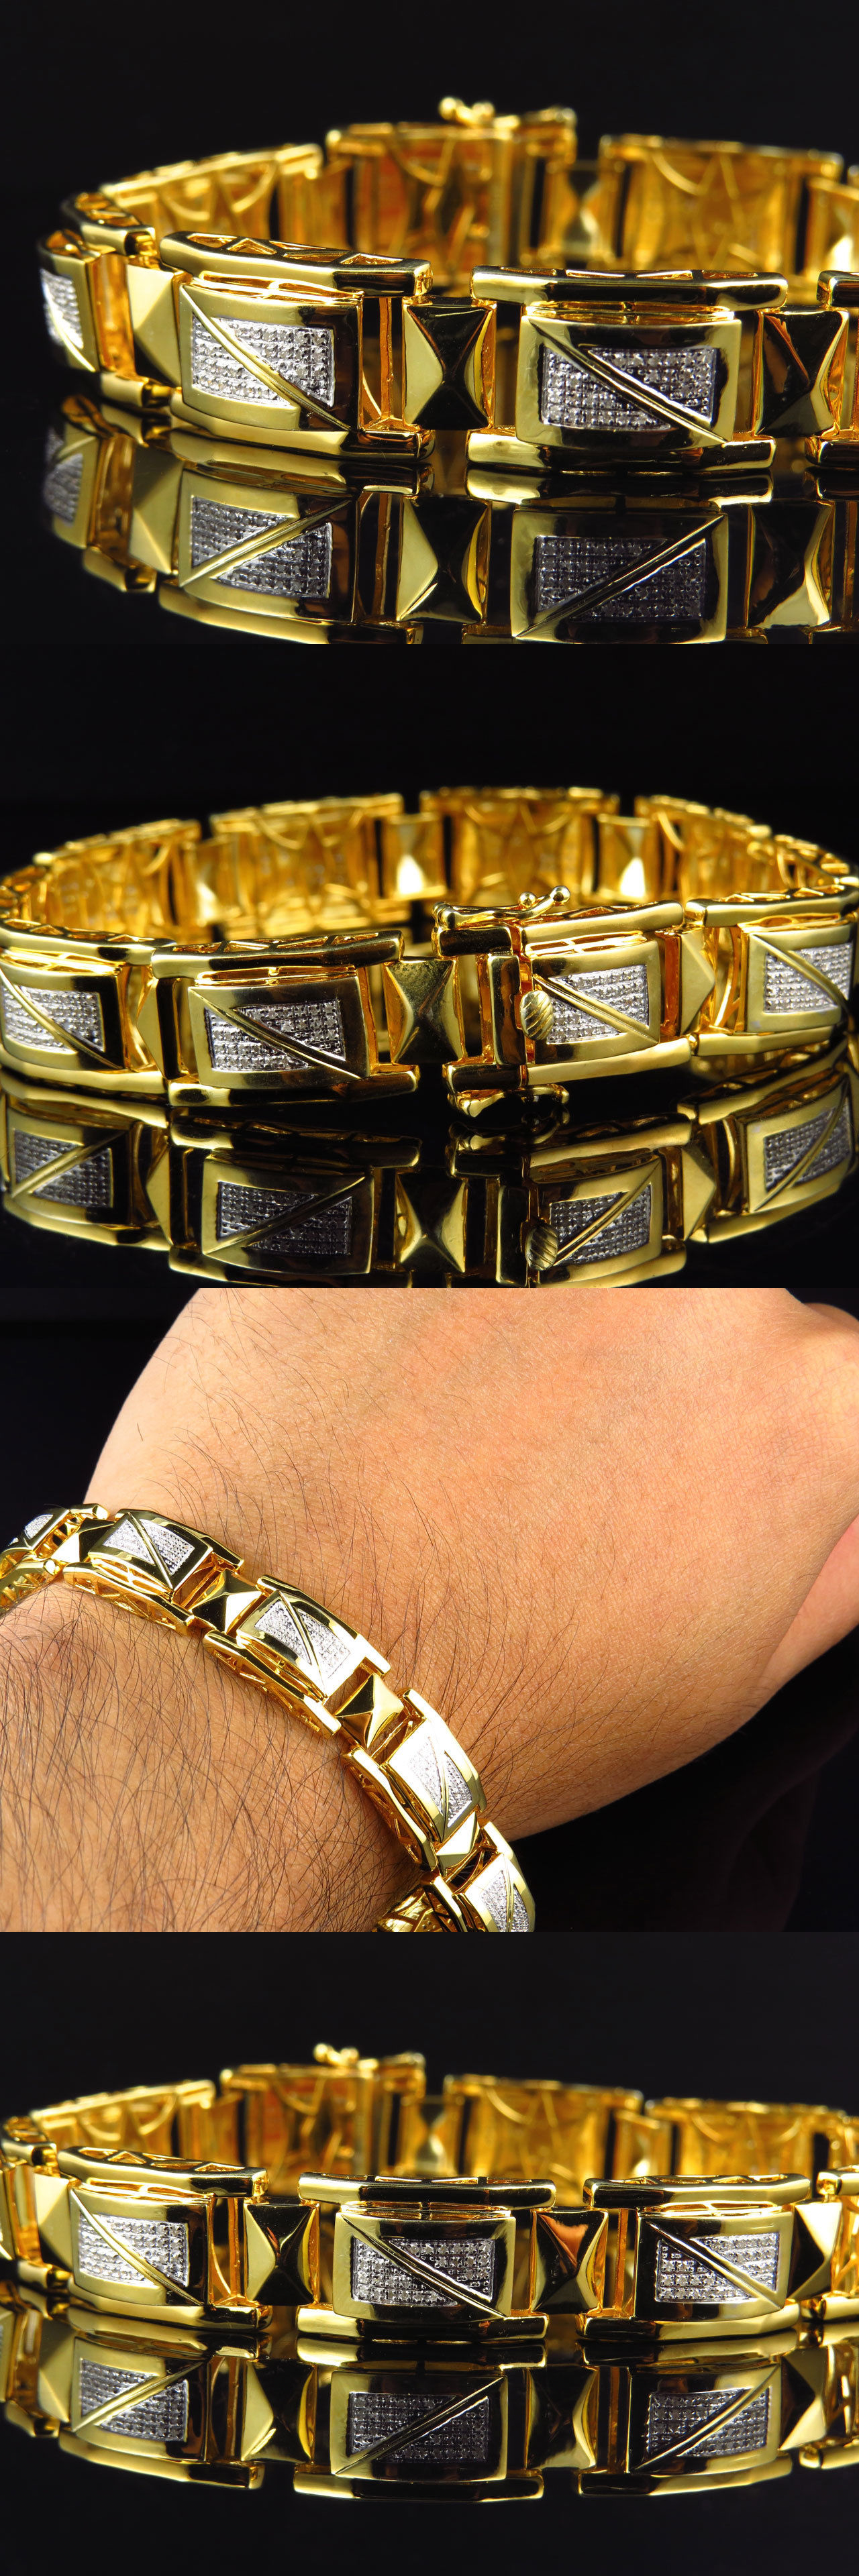 Bracelets 137835: Mens 12Mm Genuine Real Diamond Bracelet In Yellow Gold Finish 1.2 Ct BUY IT NOW ONLY: $378.99